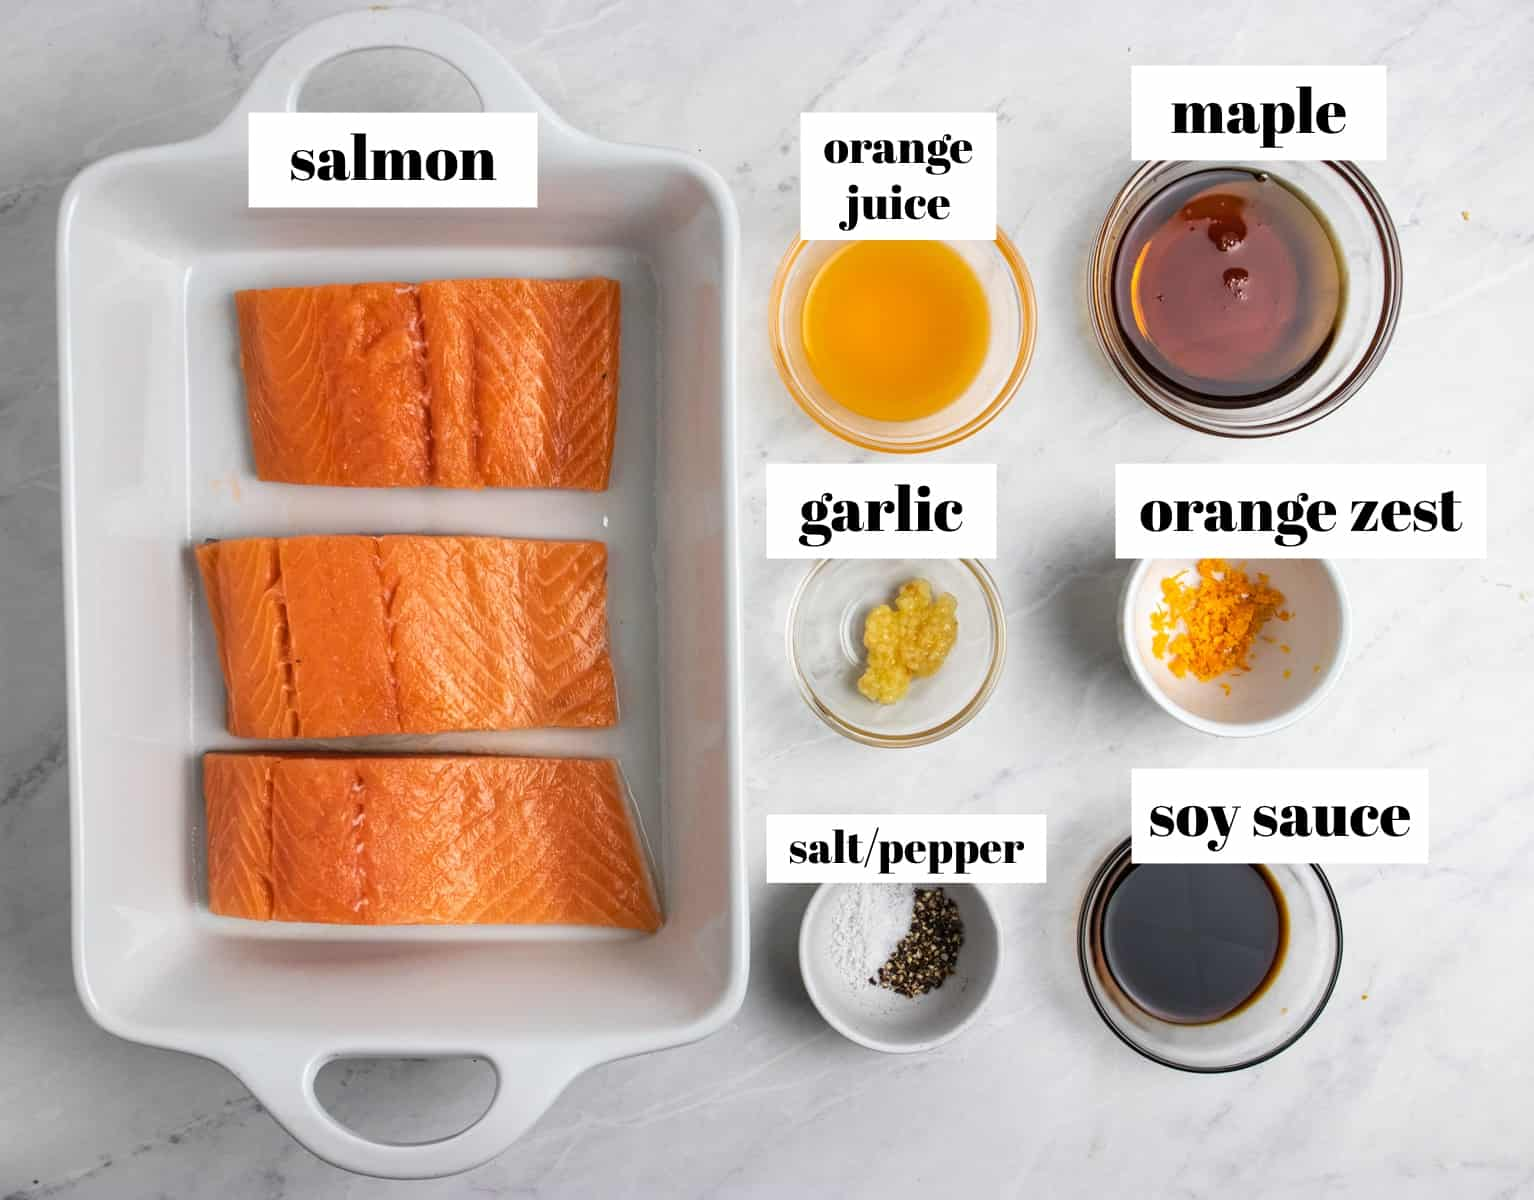 Salmon, maple, soy sauce, garlic and other ingredients labeled on counter.